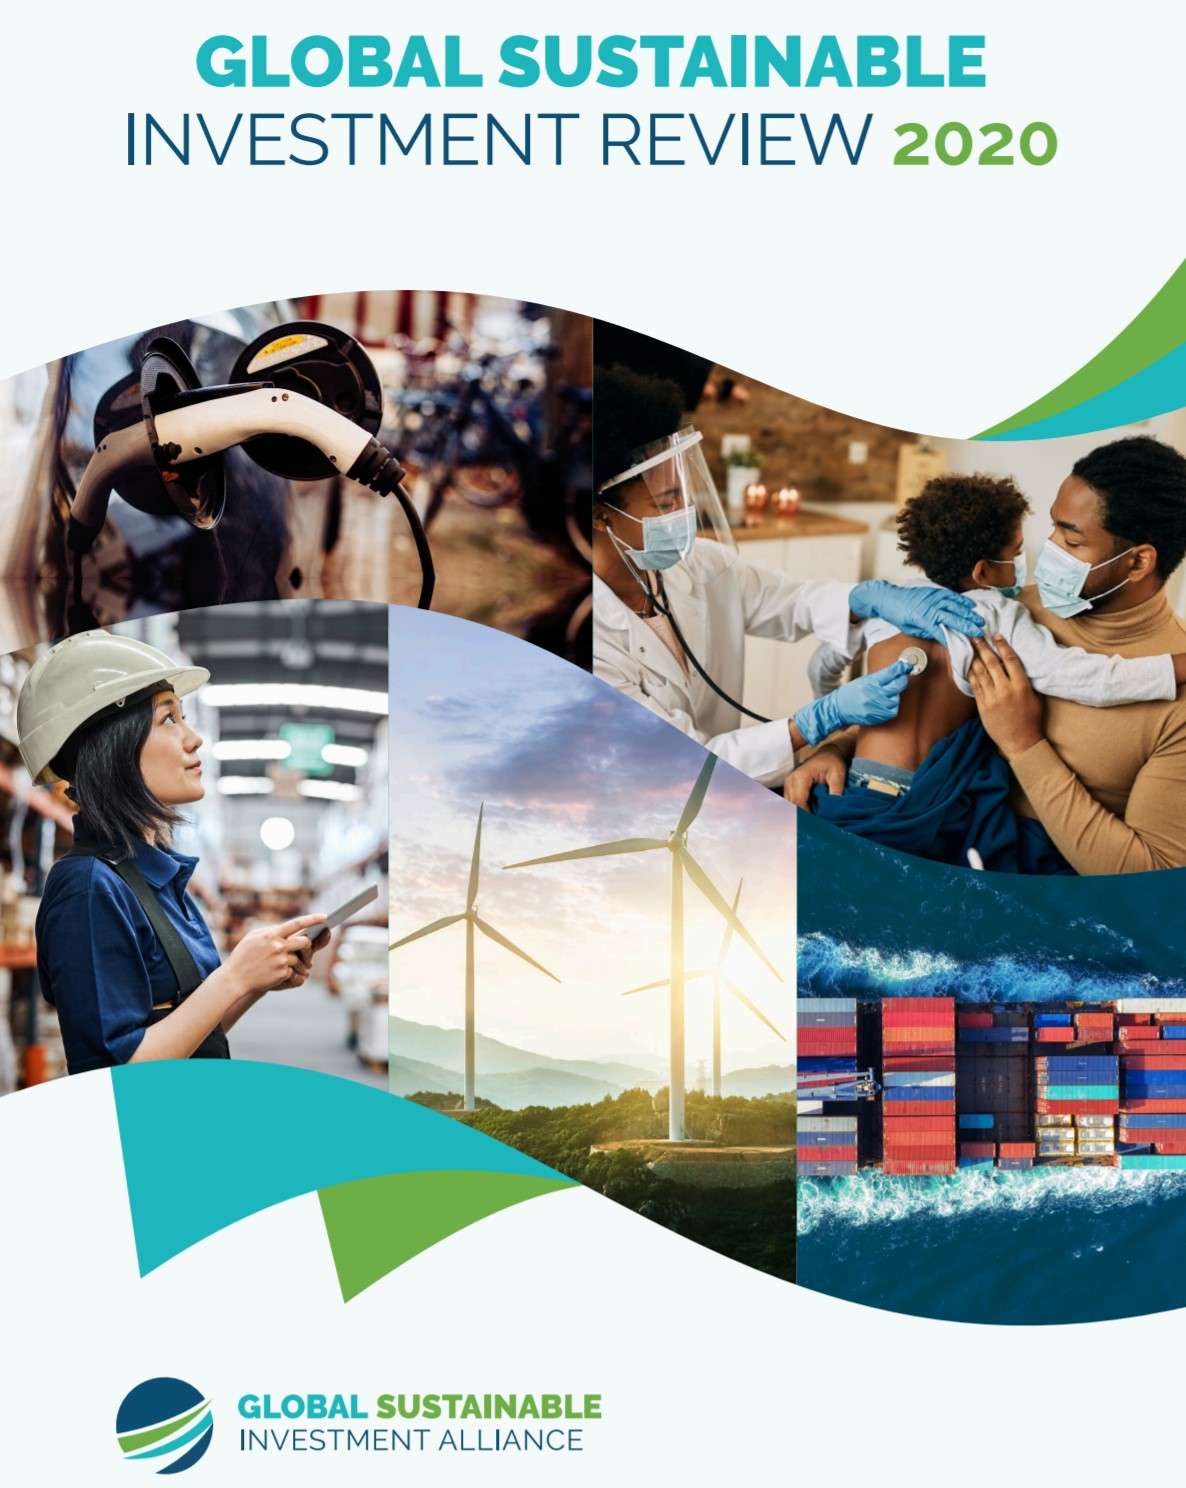 Report: Global sustainable investment hits $35.3trn wordwide